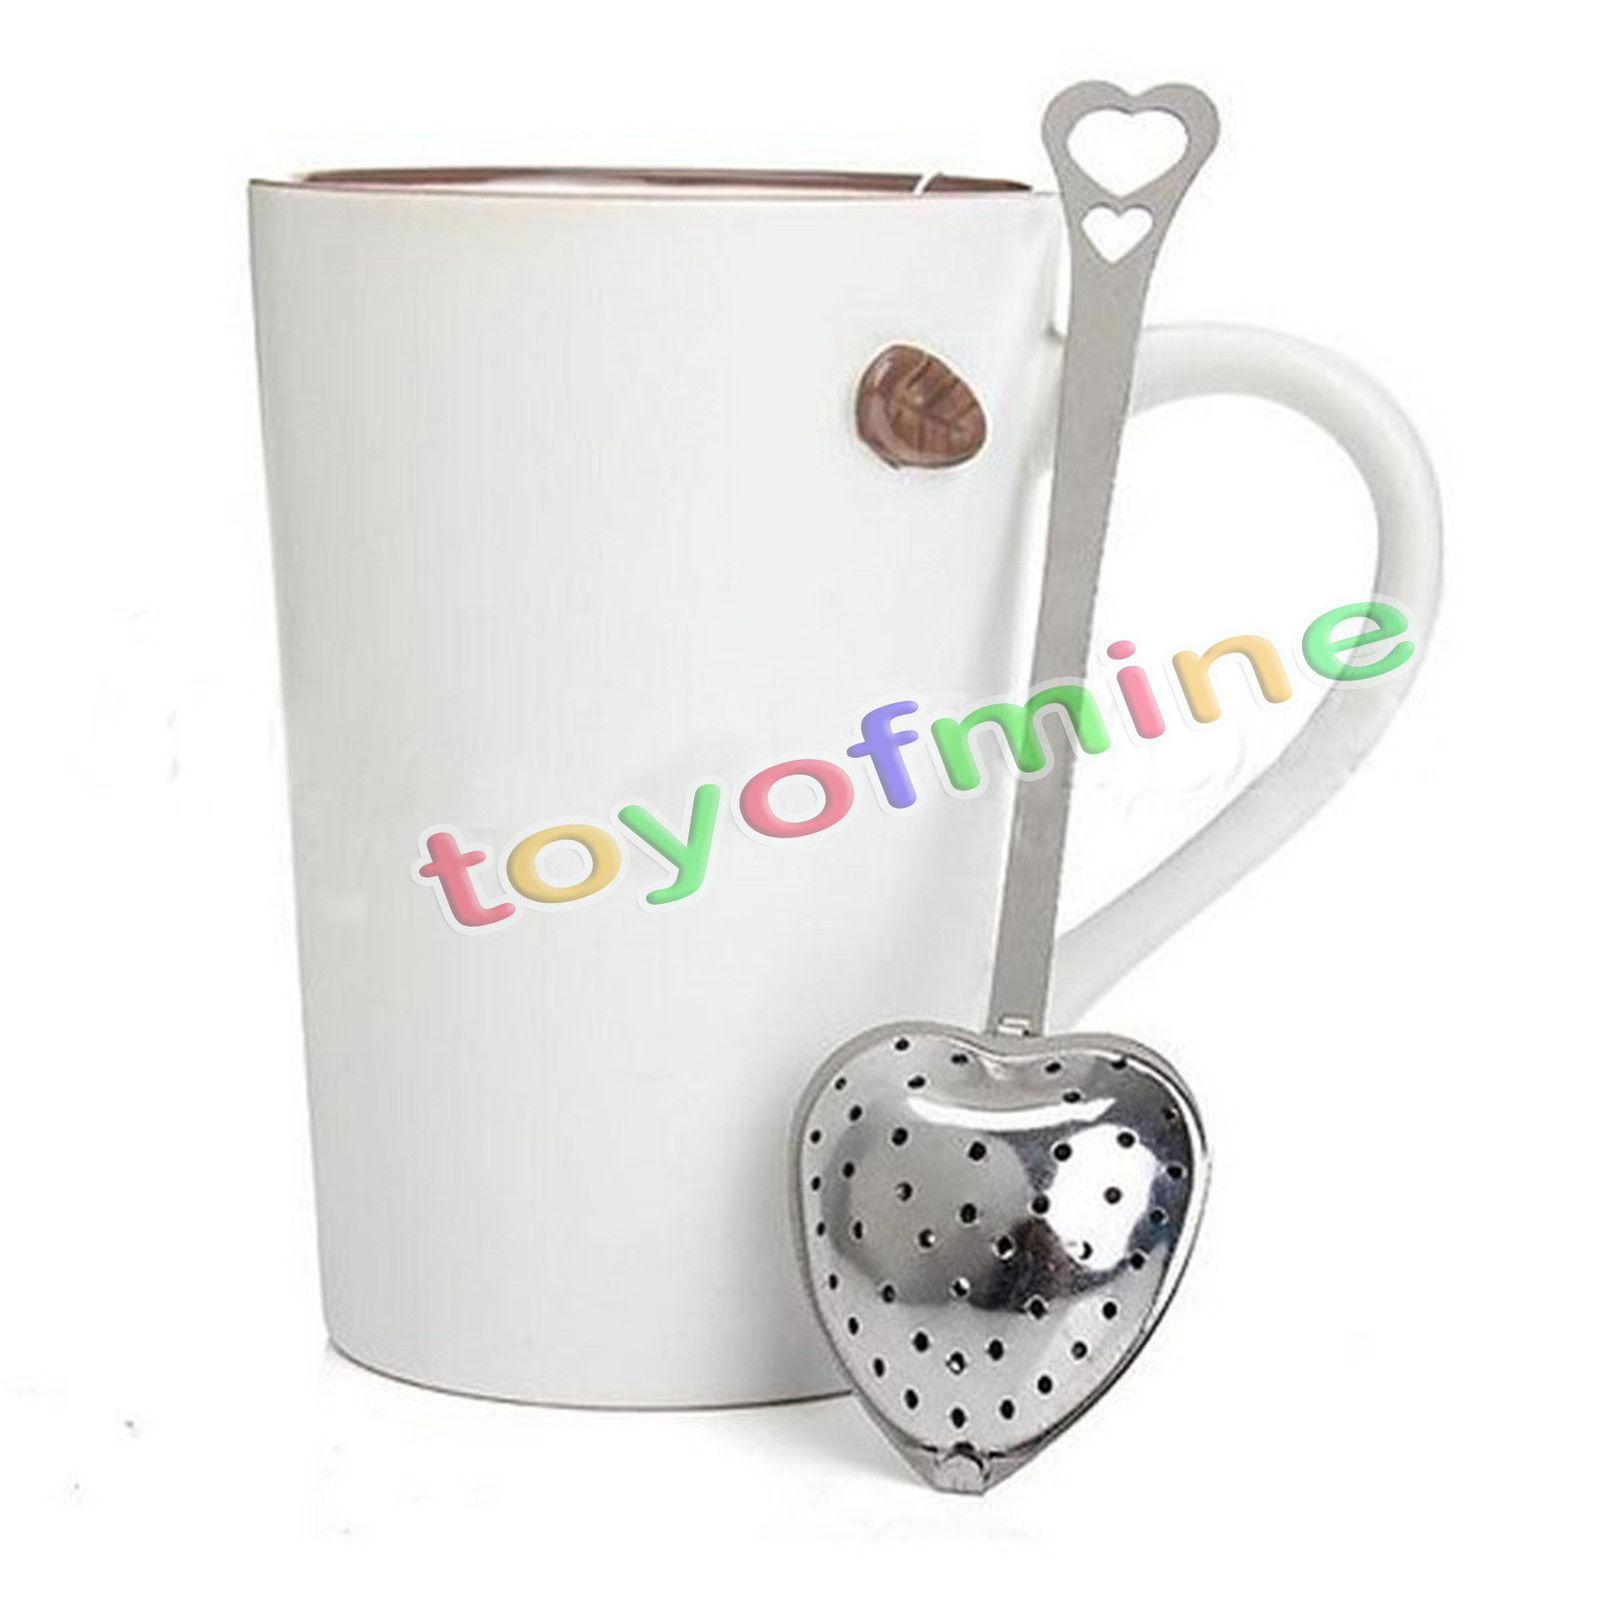 New Stainless Steel Loose Tea Infuser Leaf Strainer Filter Diffuser Herbal Spice(China (Mainland))